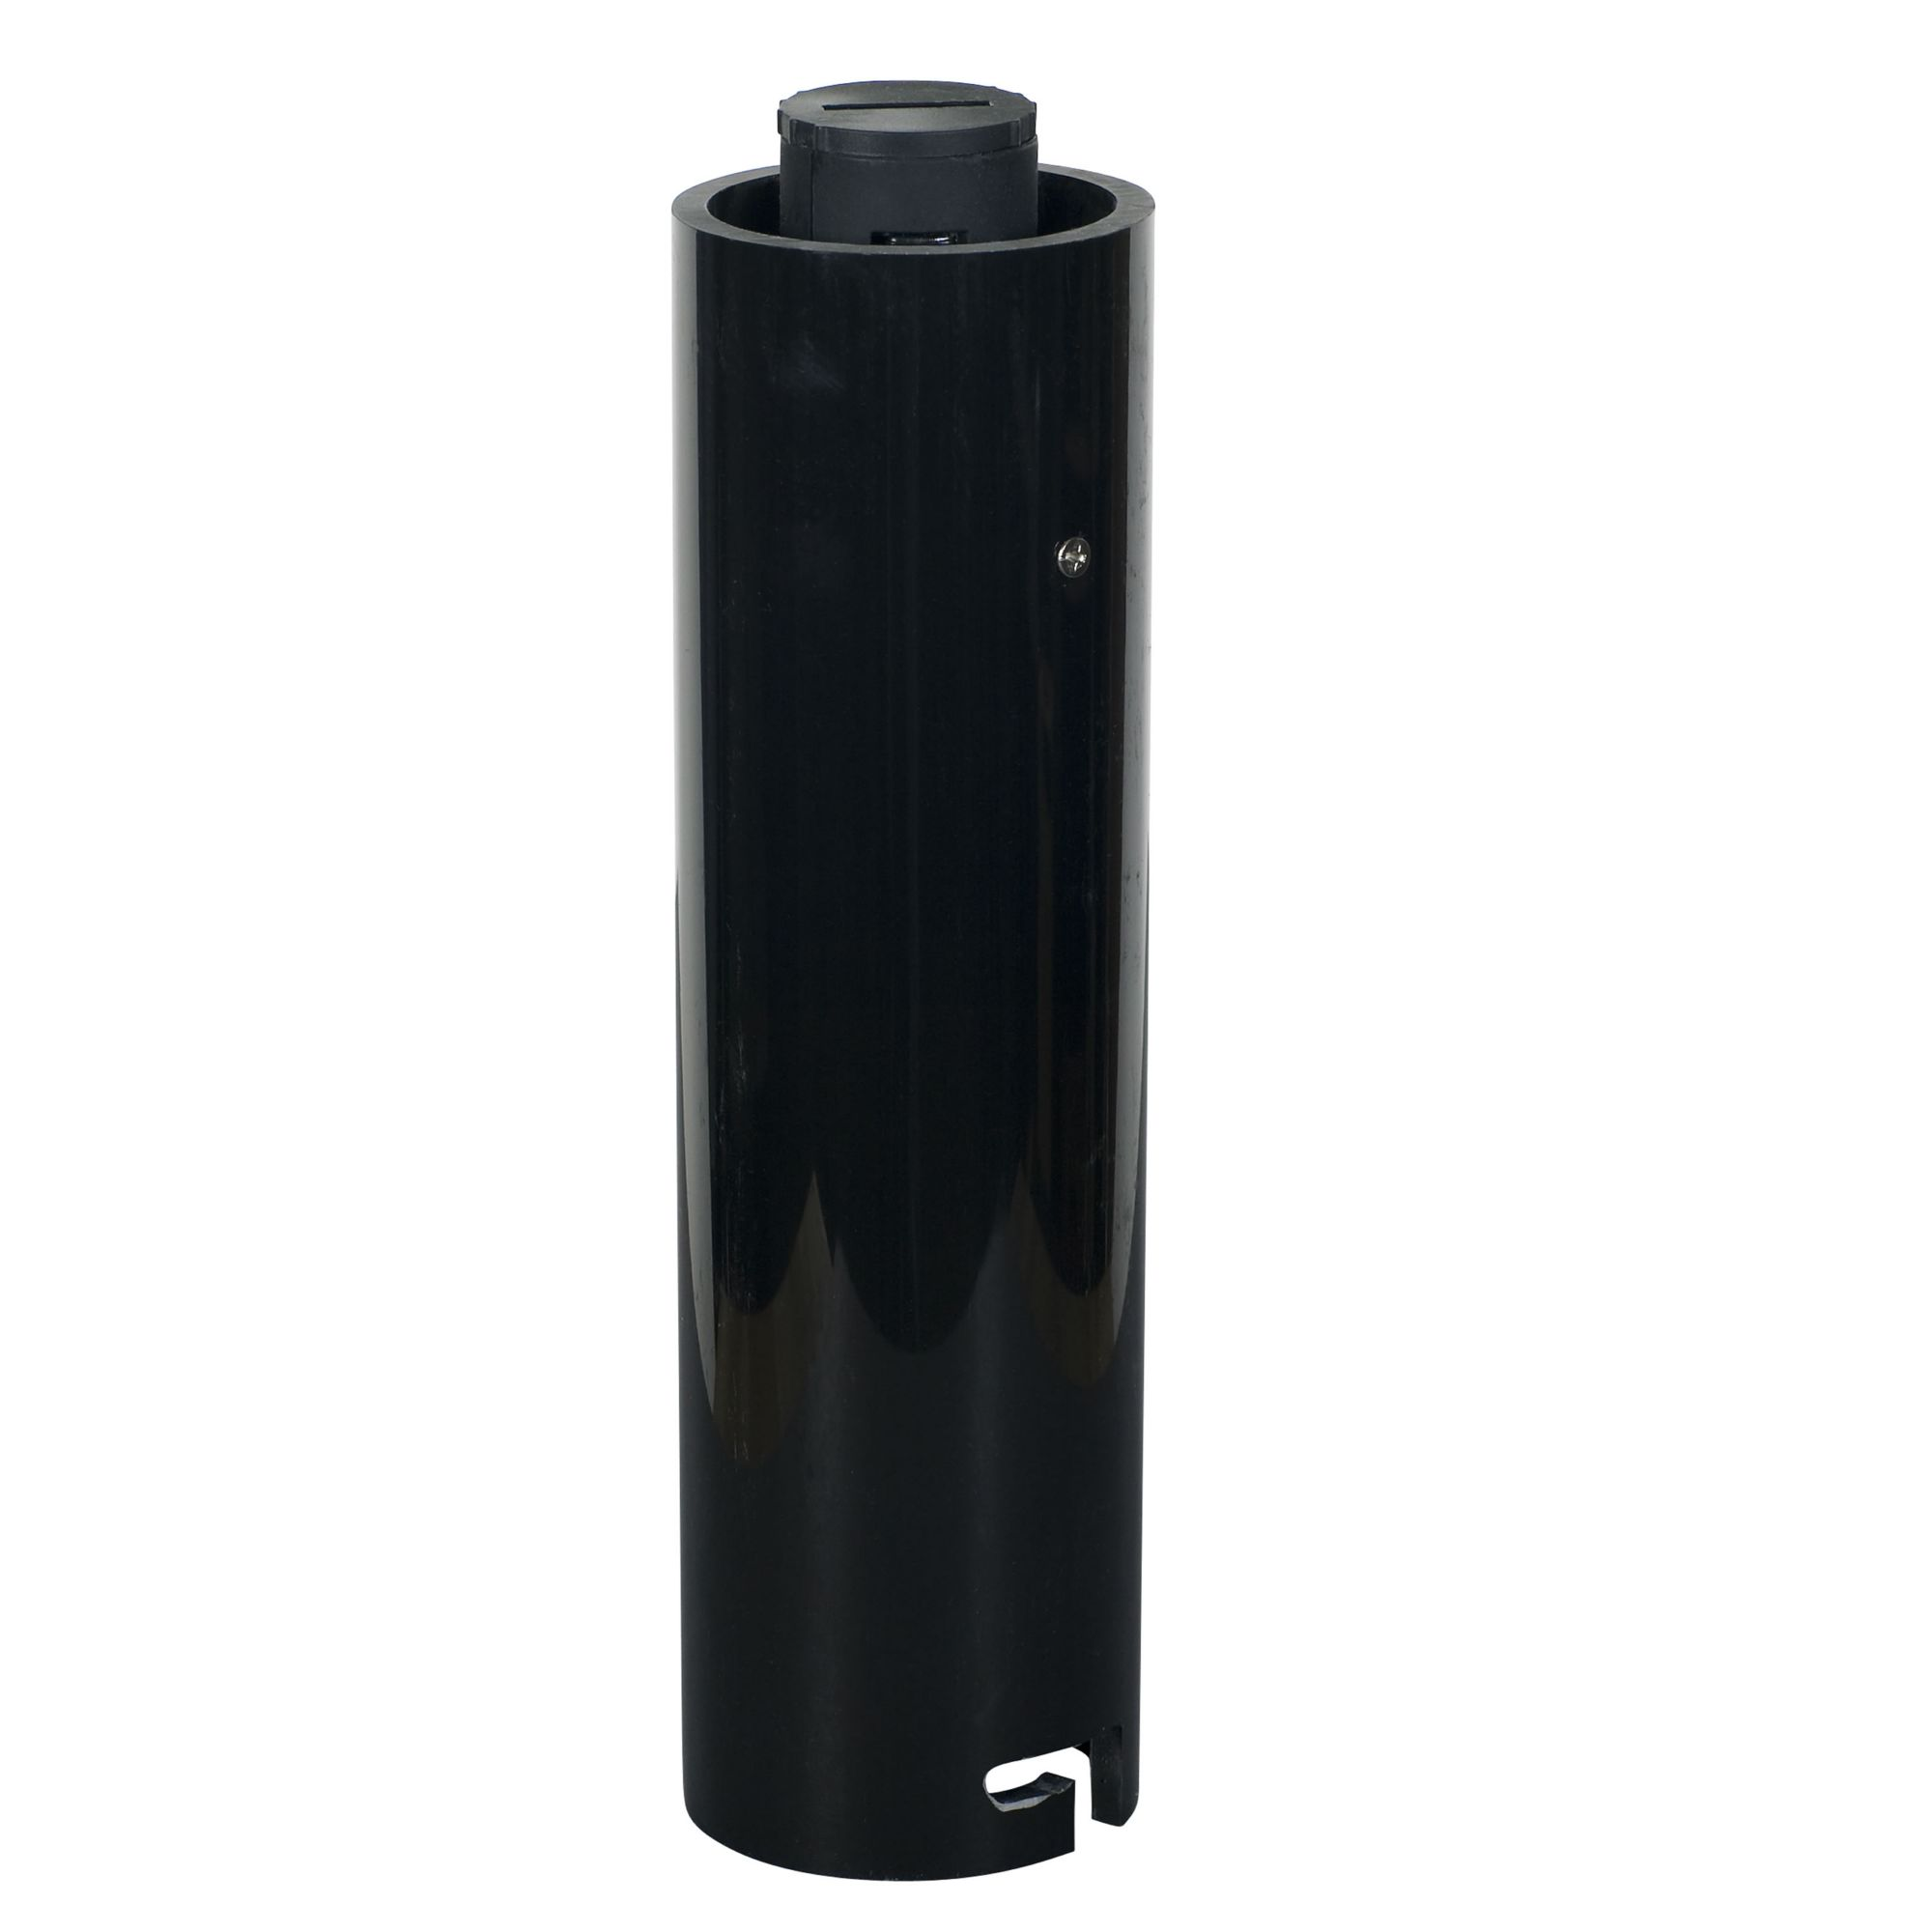 liberty mosquito trap plume tube kit mosquito magnet. Black Bedroom Furniture Sets. Home Design Ideas